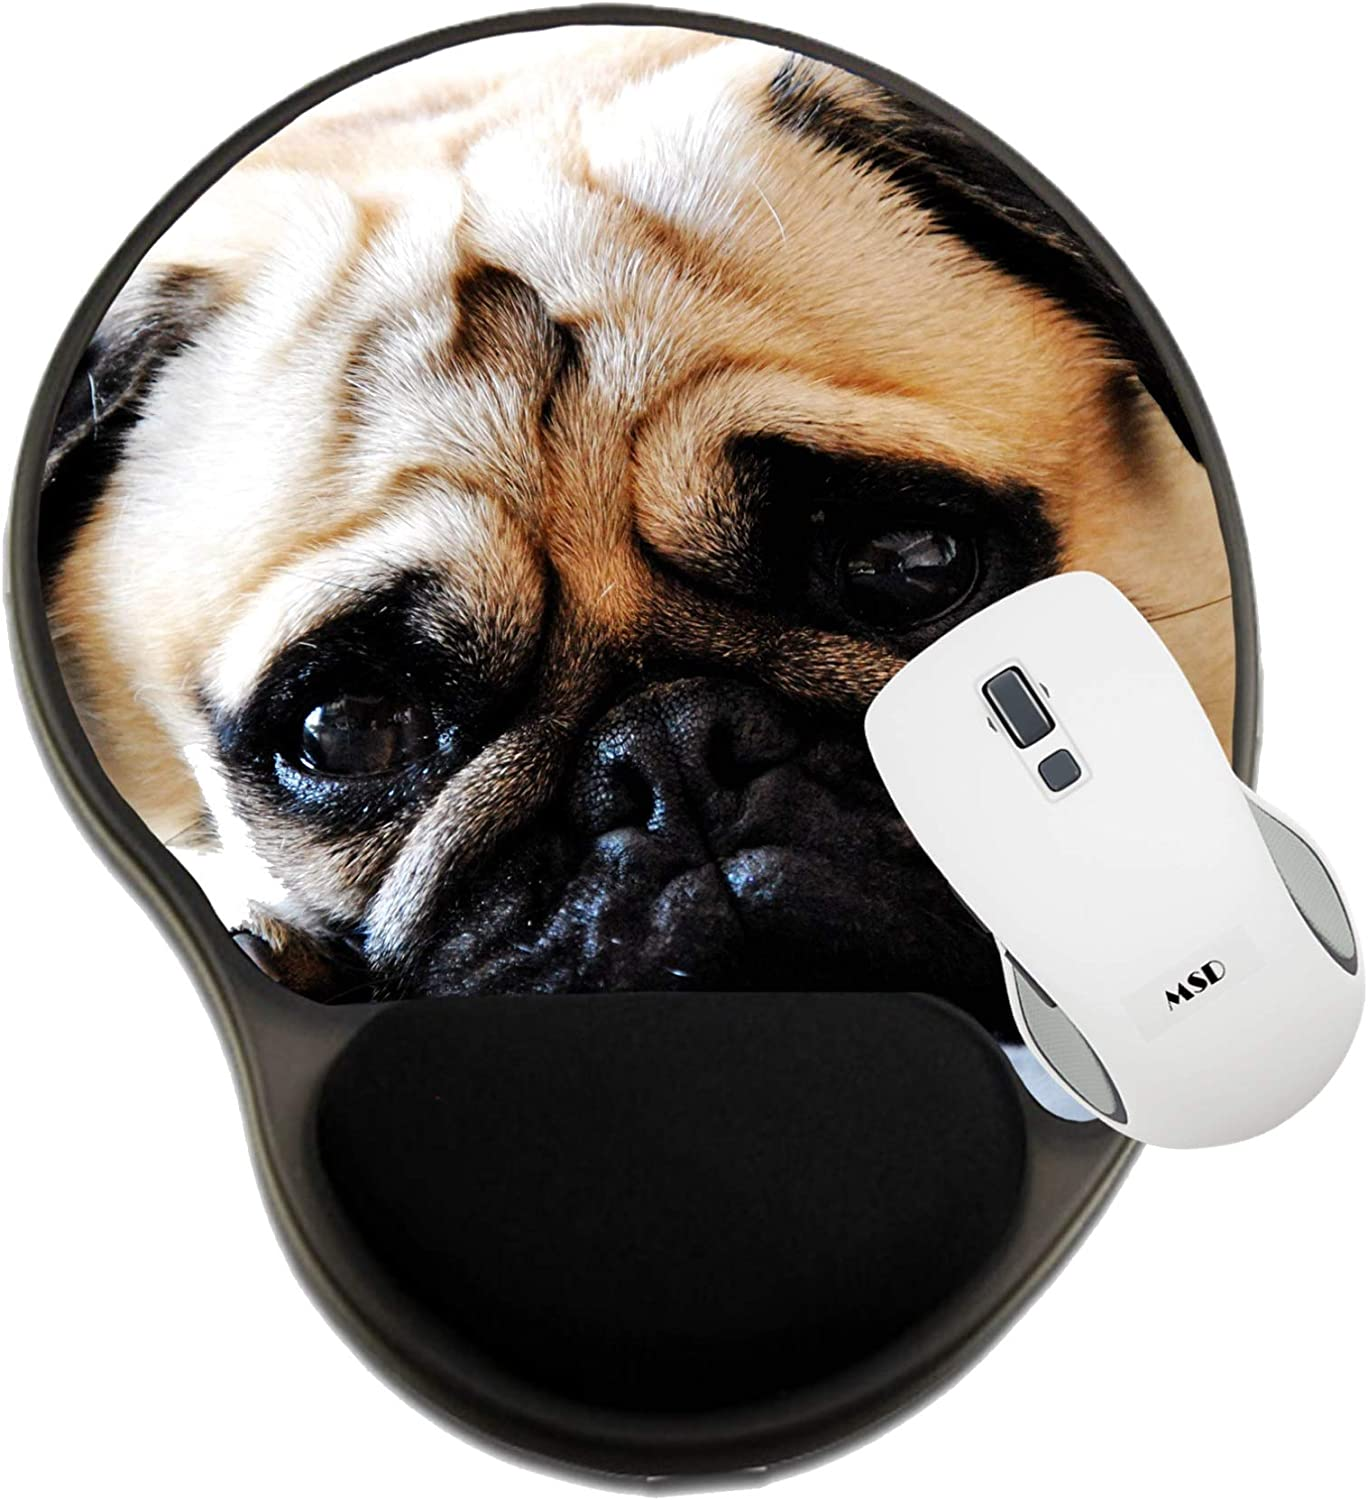 Mat with Wrist Support 20332037 Pug Lying on The Sofa Looking at The Camera Image ID MSD Mousepad Wrist Rest Protected Mouse Pads